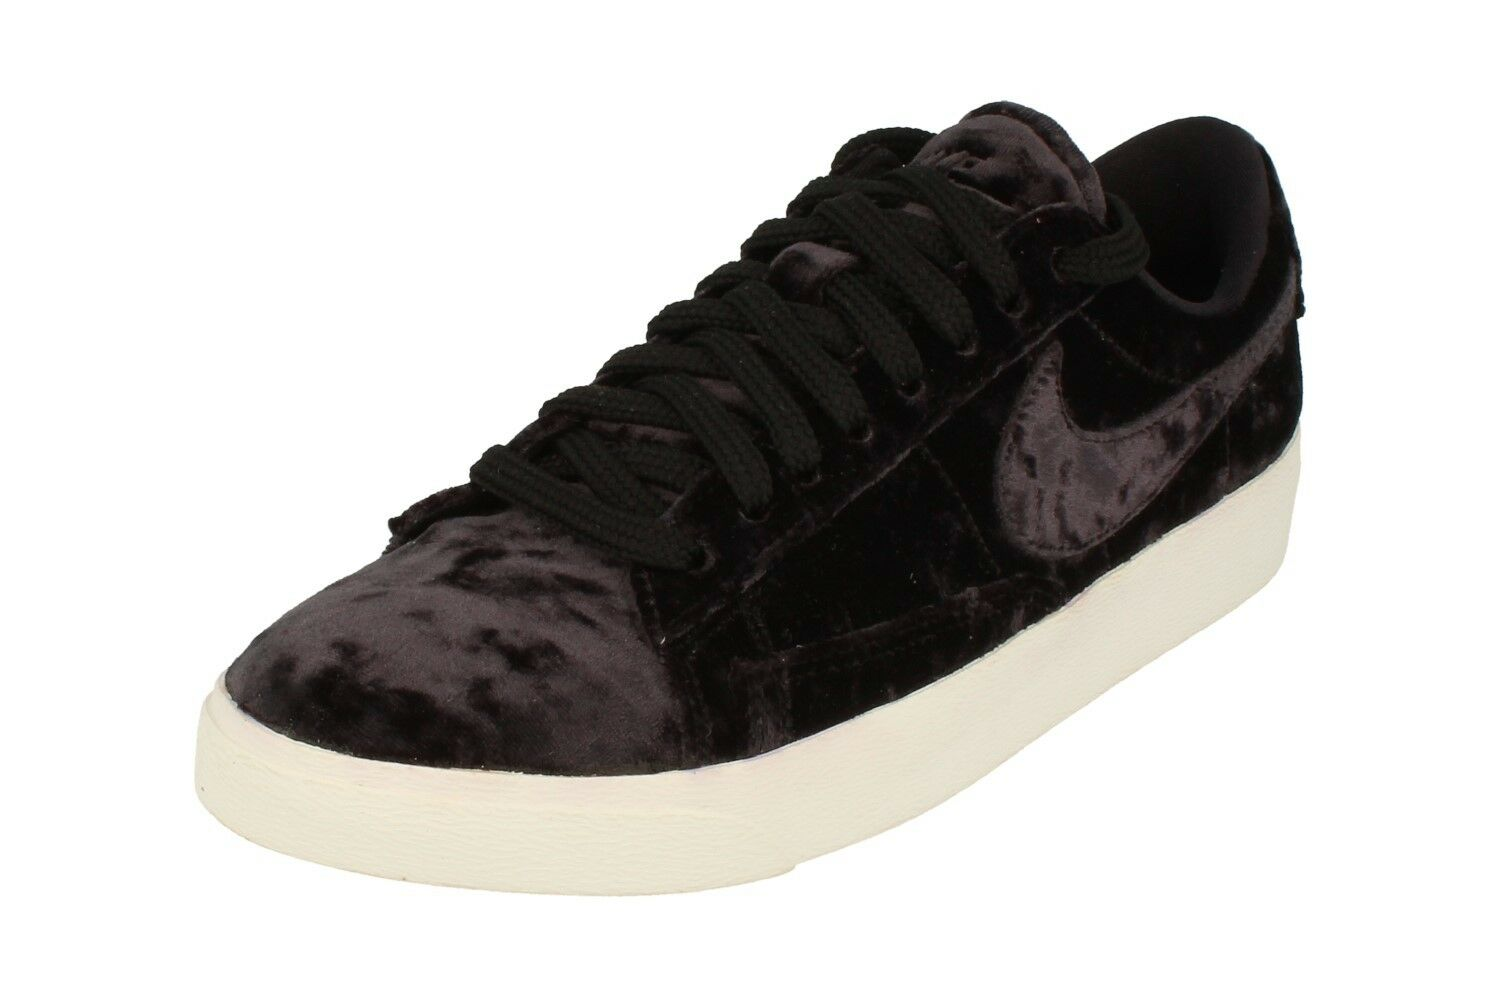 Nike Blazer Low Lx Womens Trainers Aa2017 Sneakers shoes 003